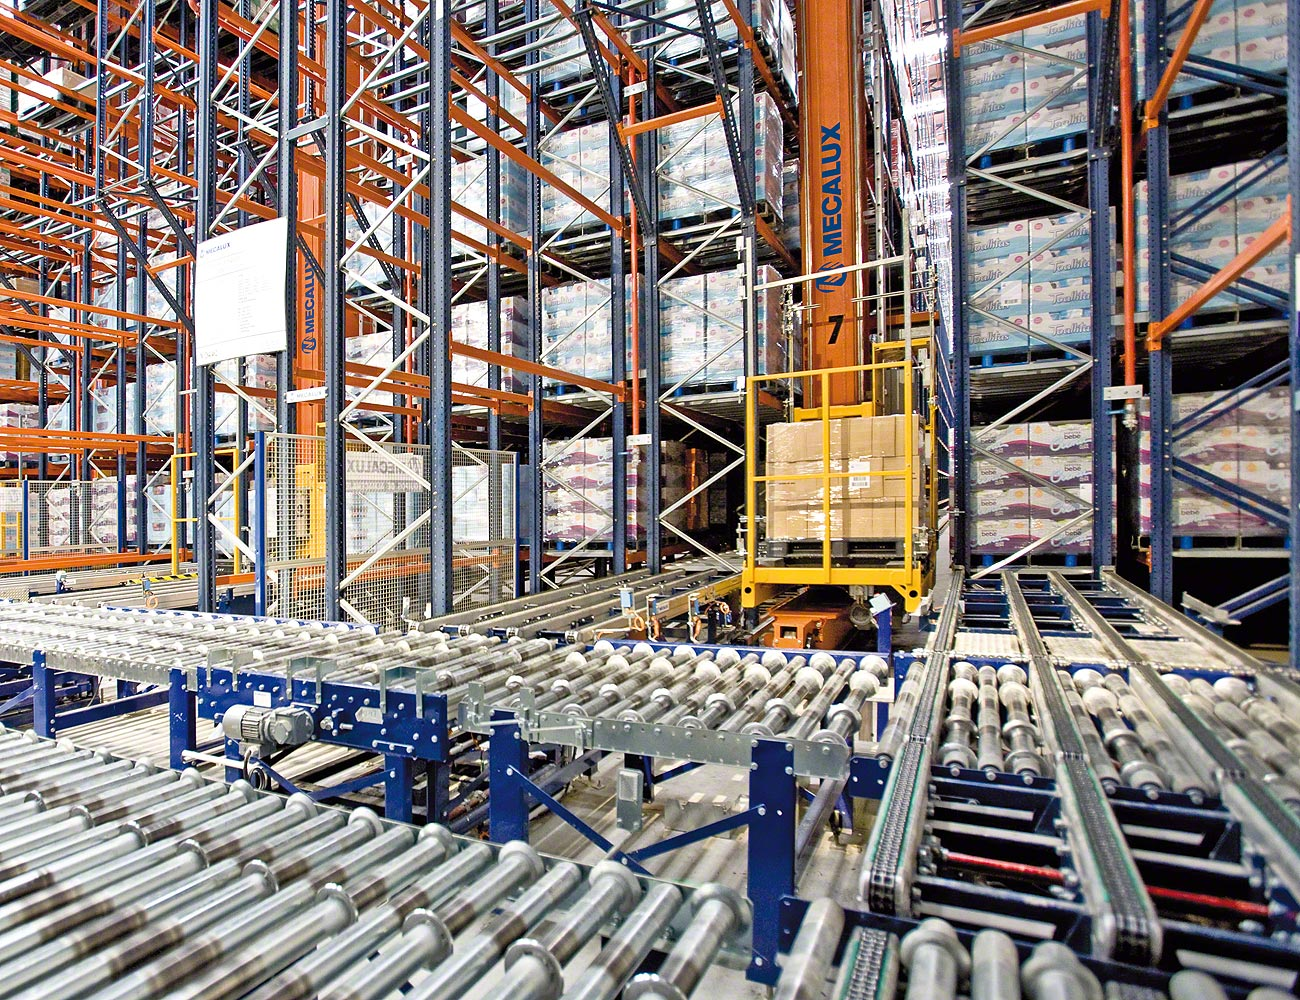 Asrs For Pallets Stacker Cranes For Pallets Interlake